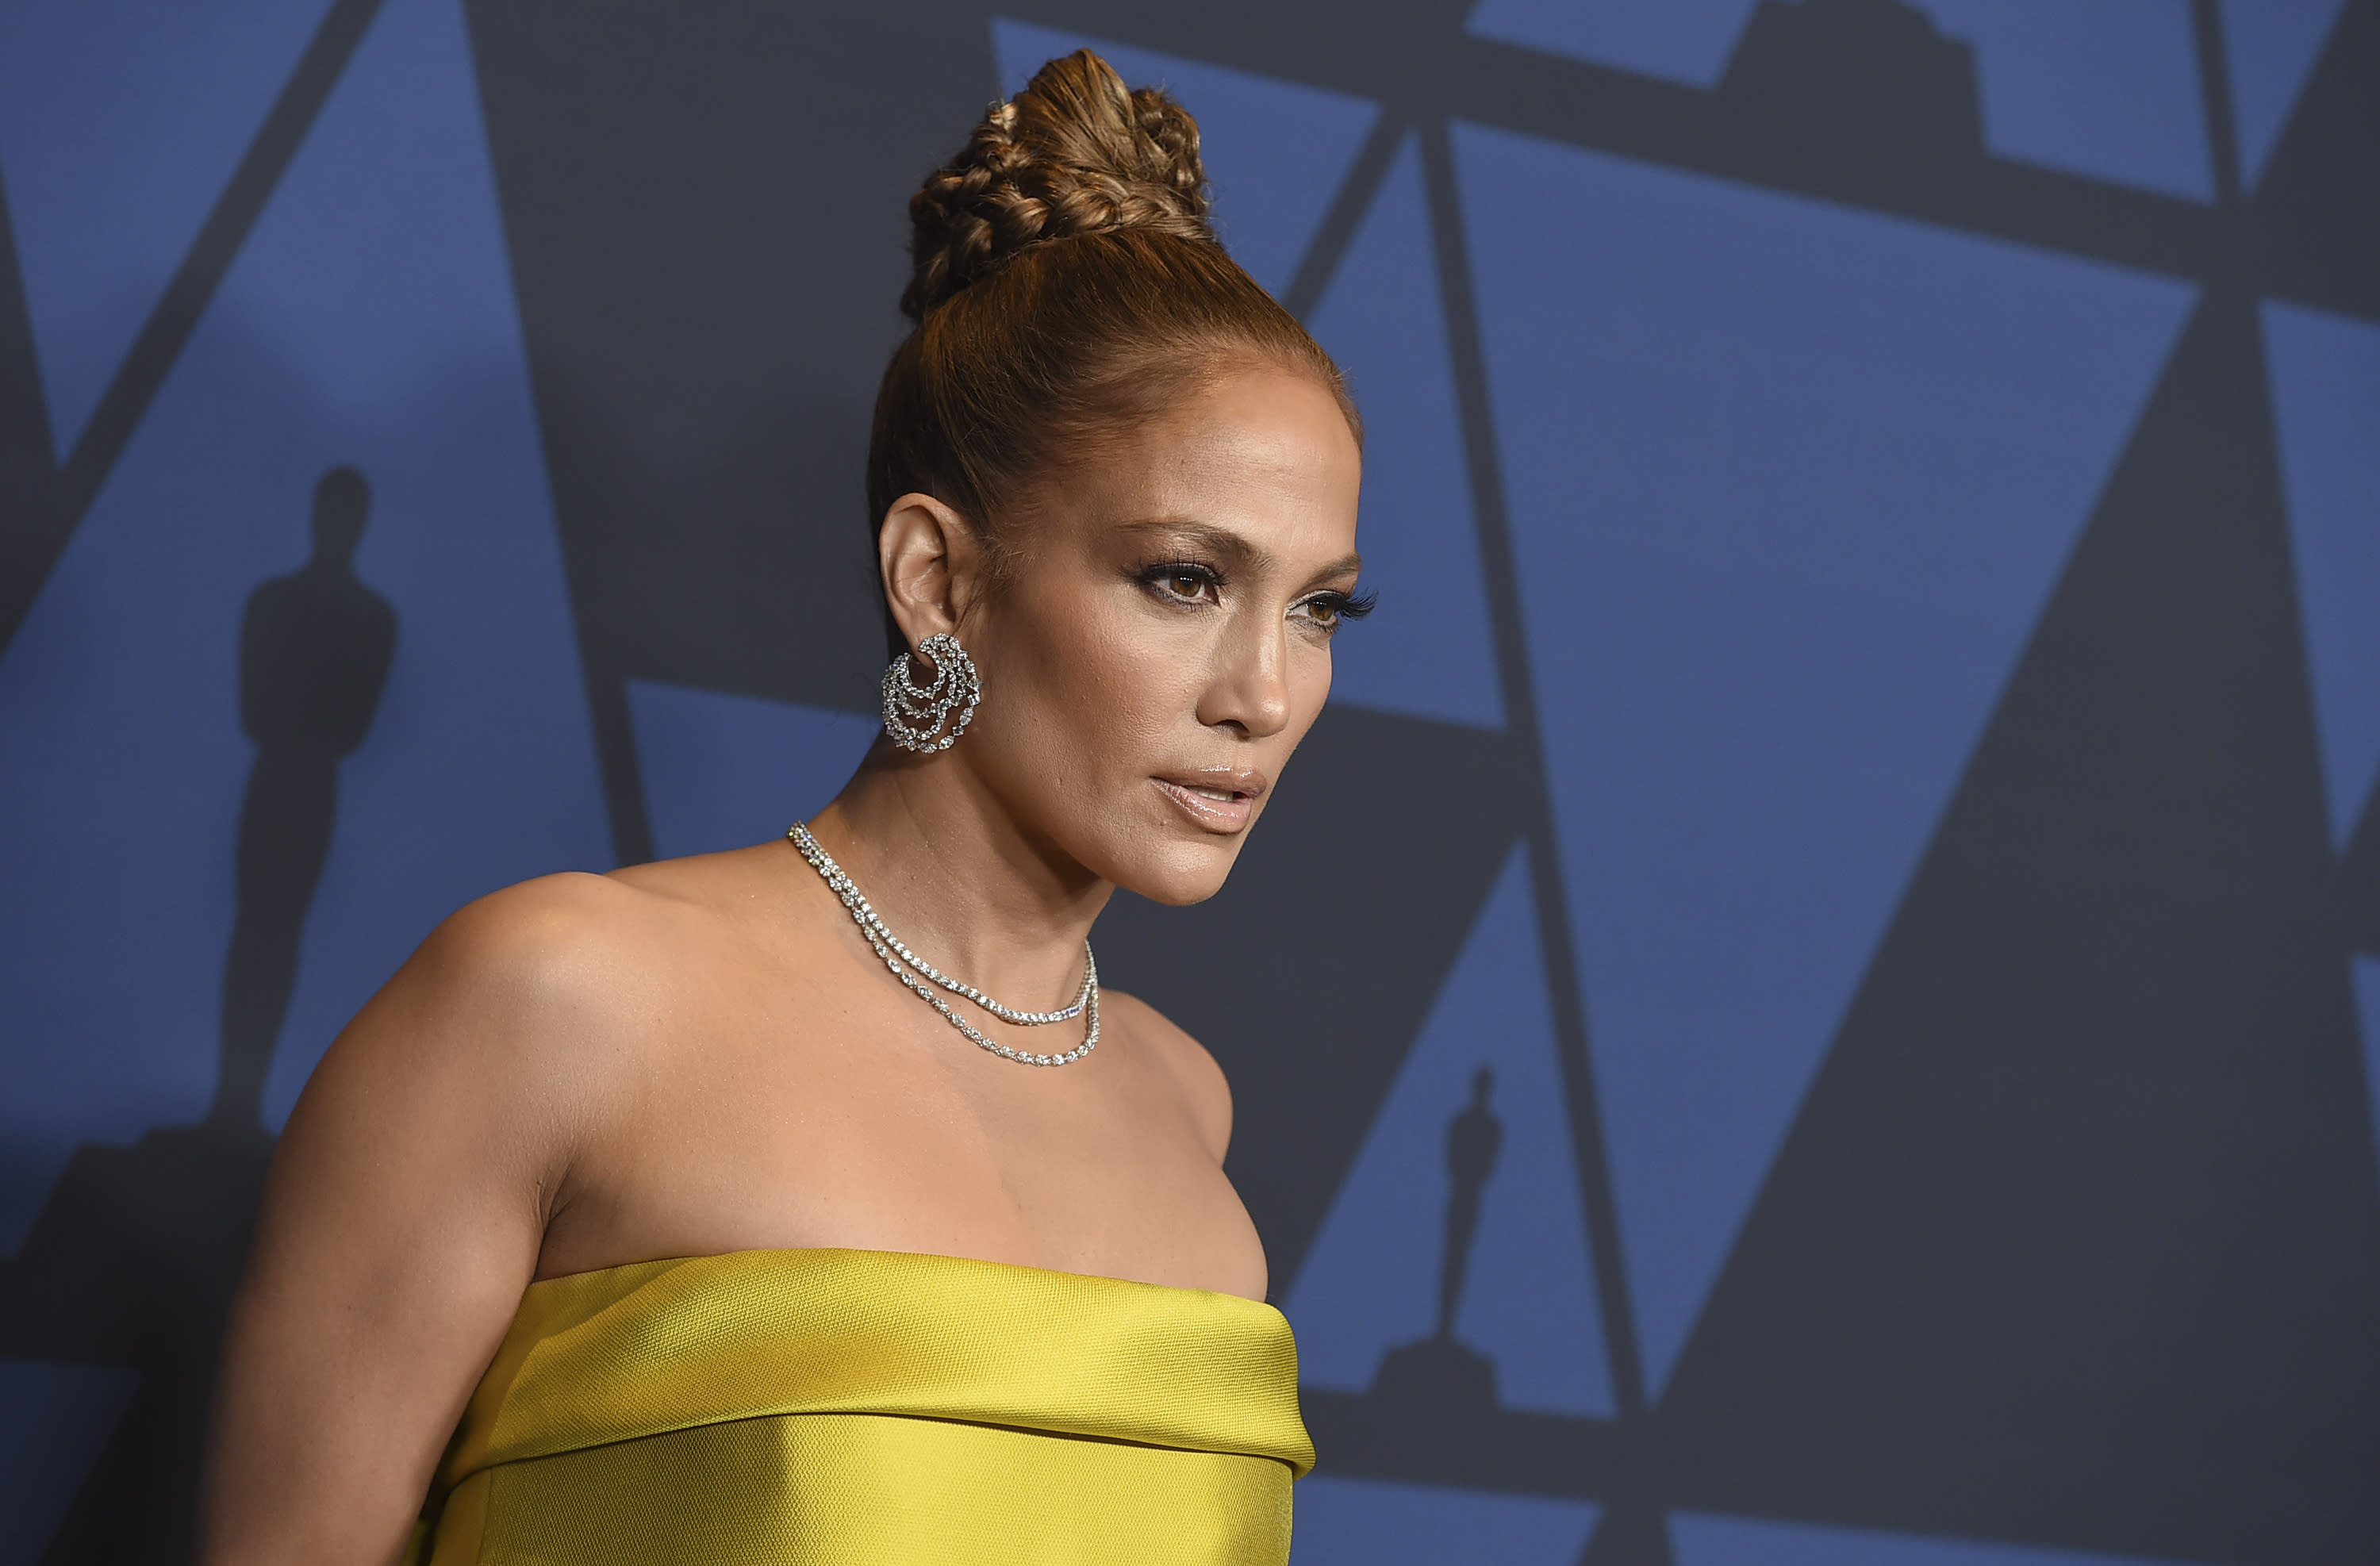 Jennifer Lopez says a director once asked to see her breasts during a meeting